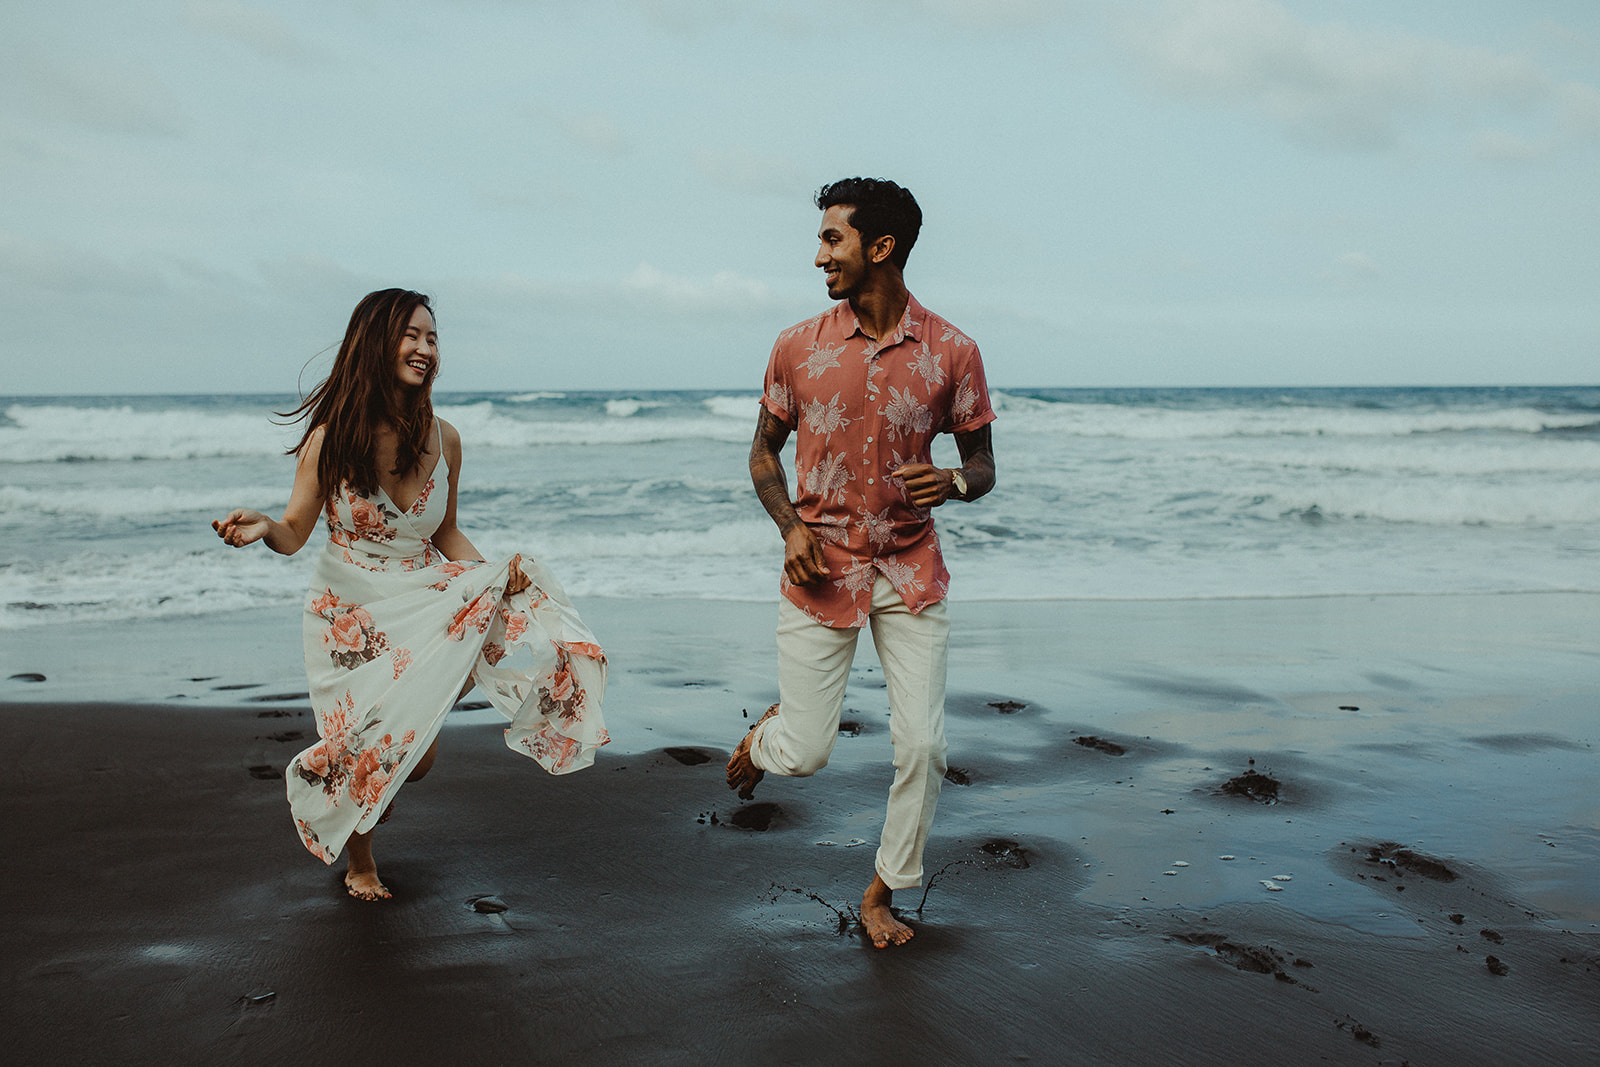 hawaii epic locations for photo shoots